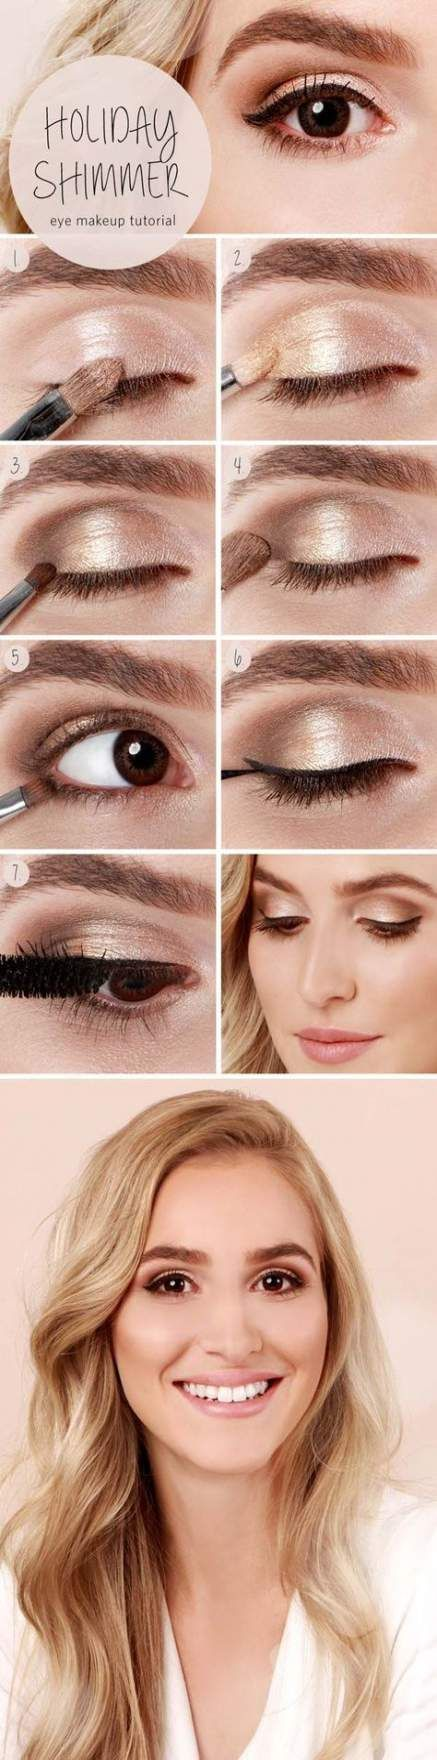 Photo of 47 trendy ideas makeup tutorial for beginners eyebrows step by step #hair #love …